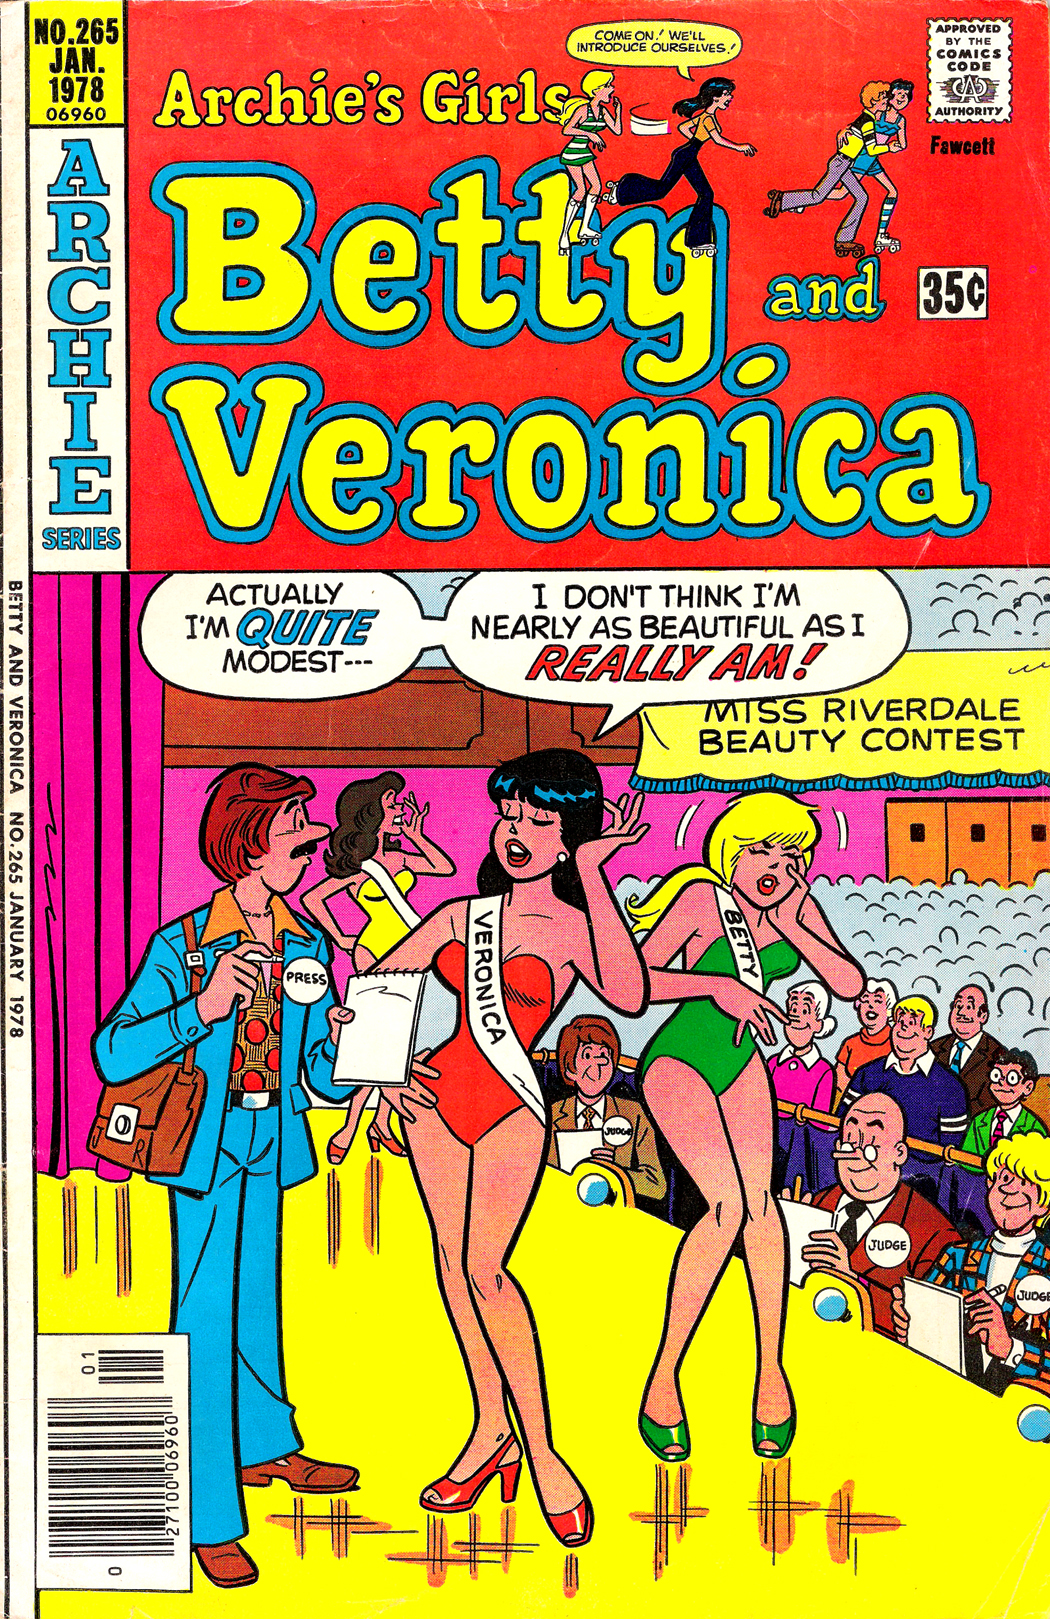 Read online Archie's Girls Betty and Veronica comic -  Issue #265 - 1